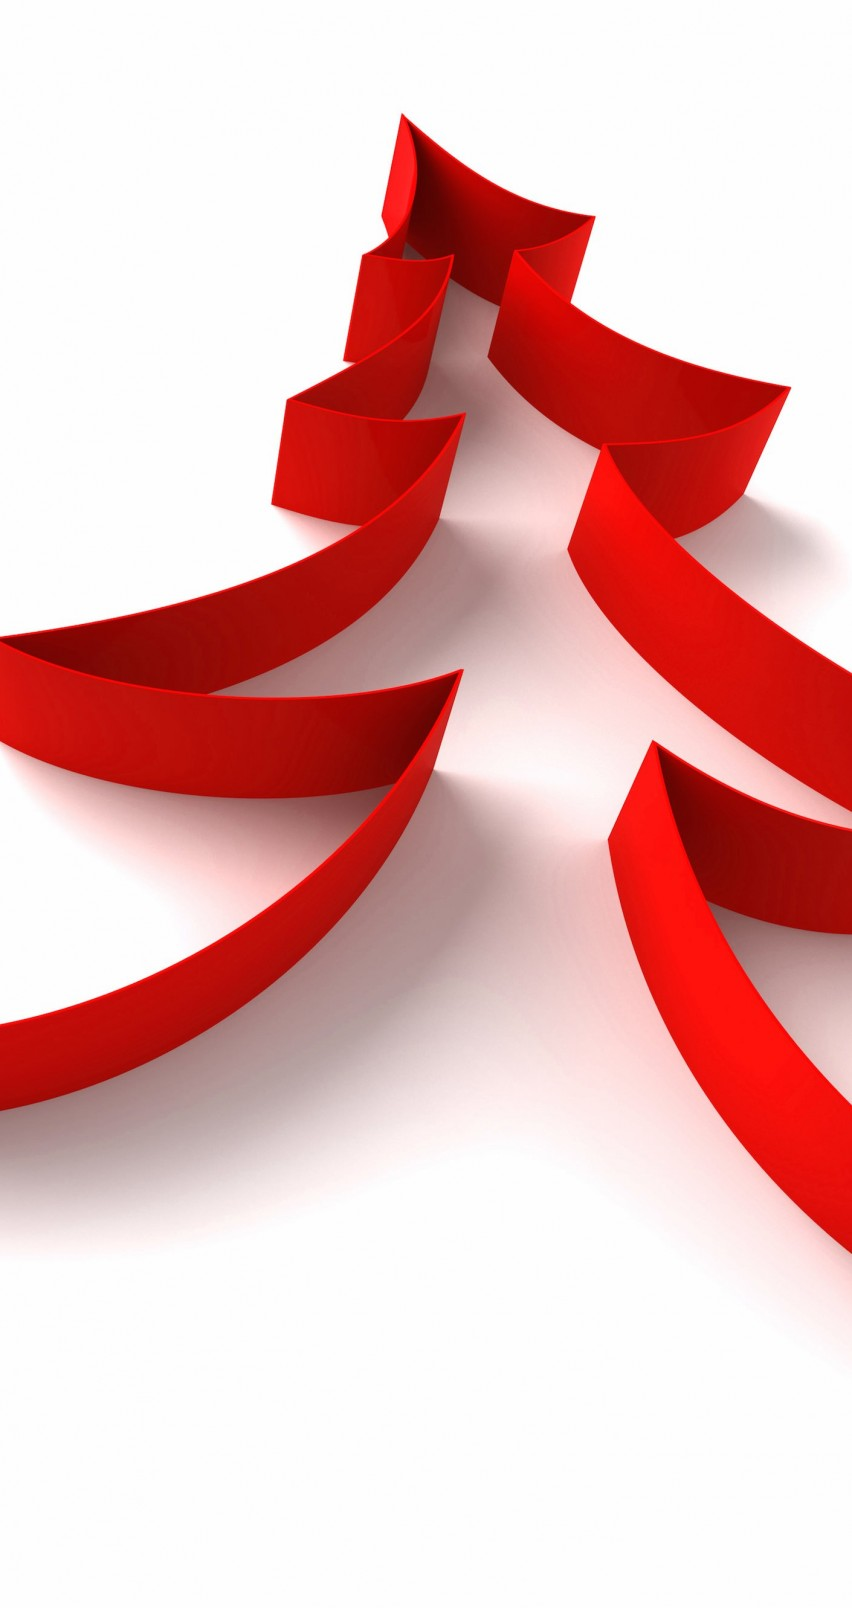 Red Ribbon Christmas Tree Wallpaper for Apple iPhone 6 / 6s